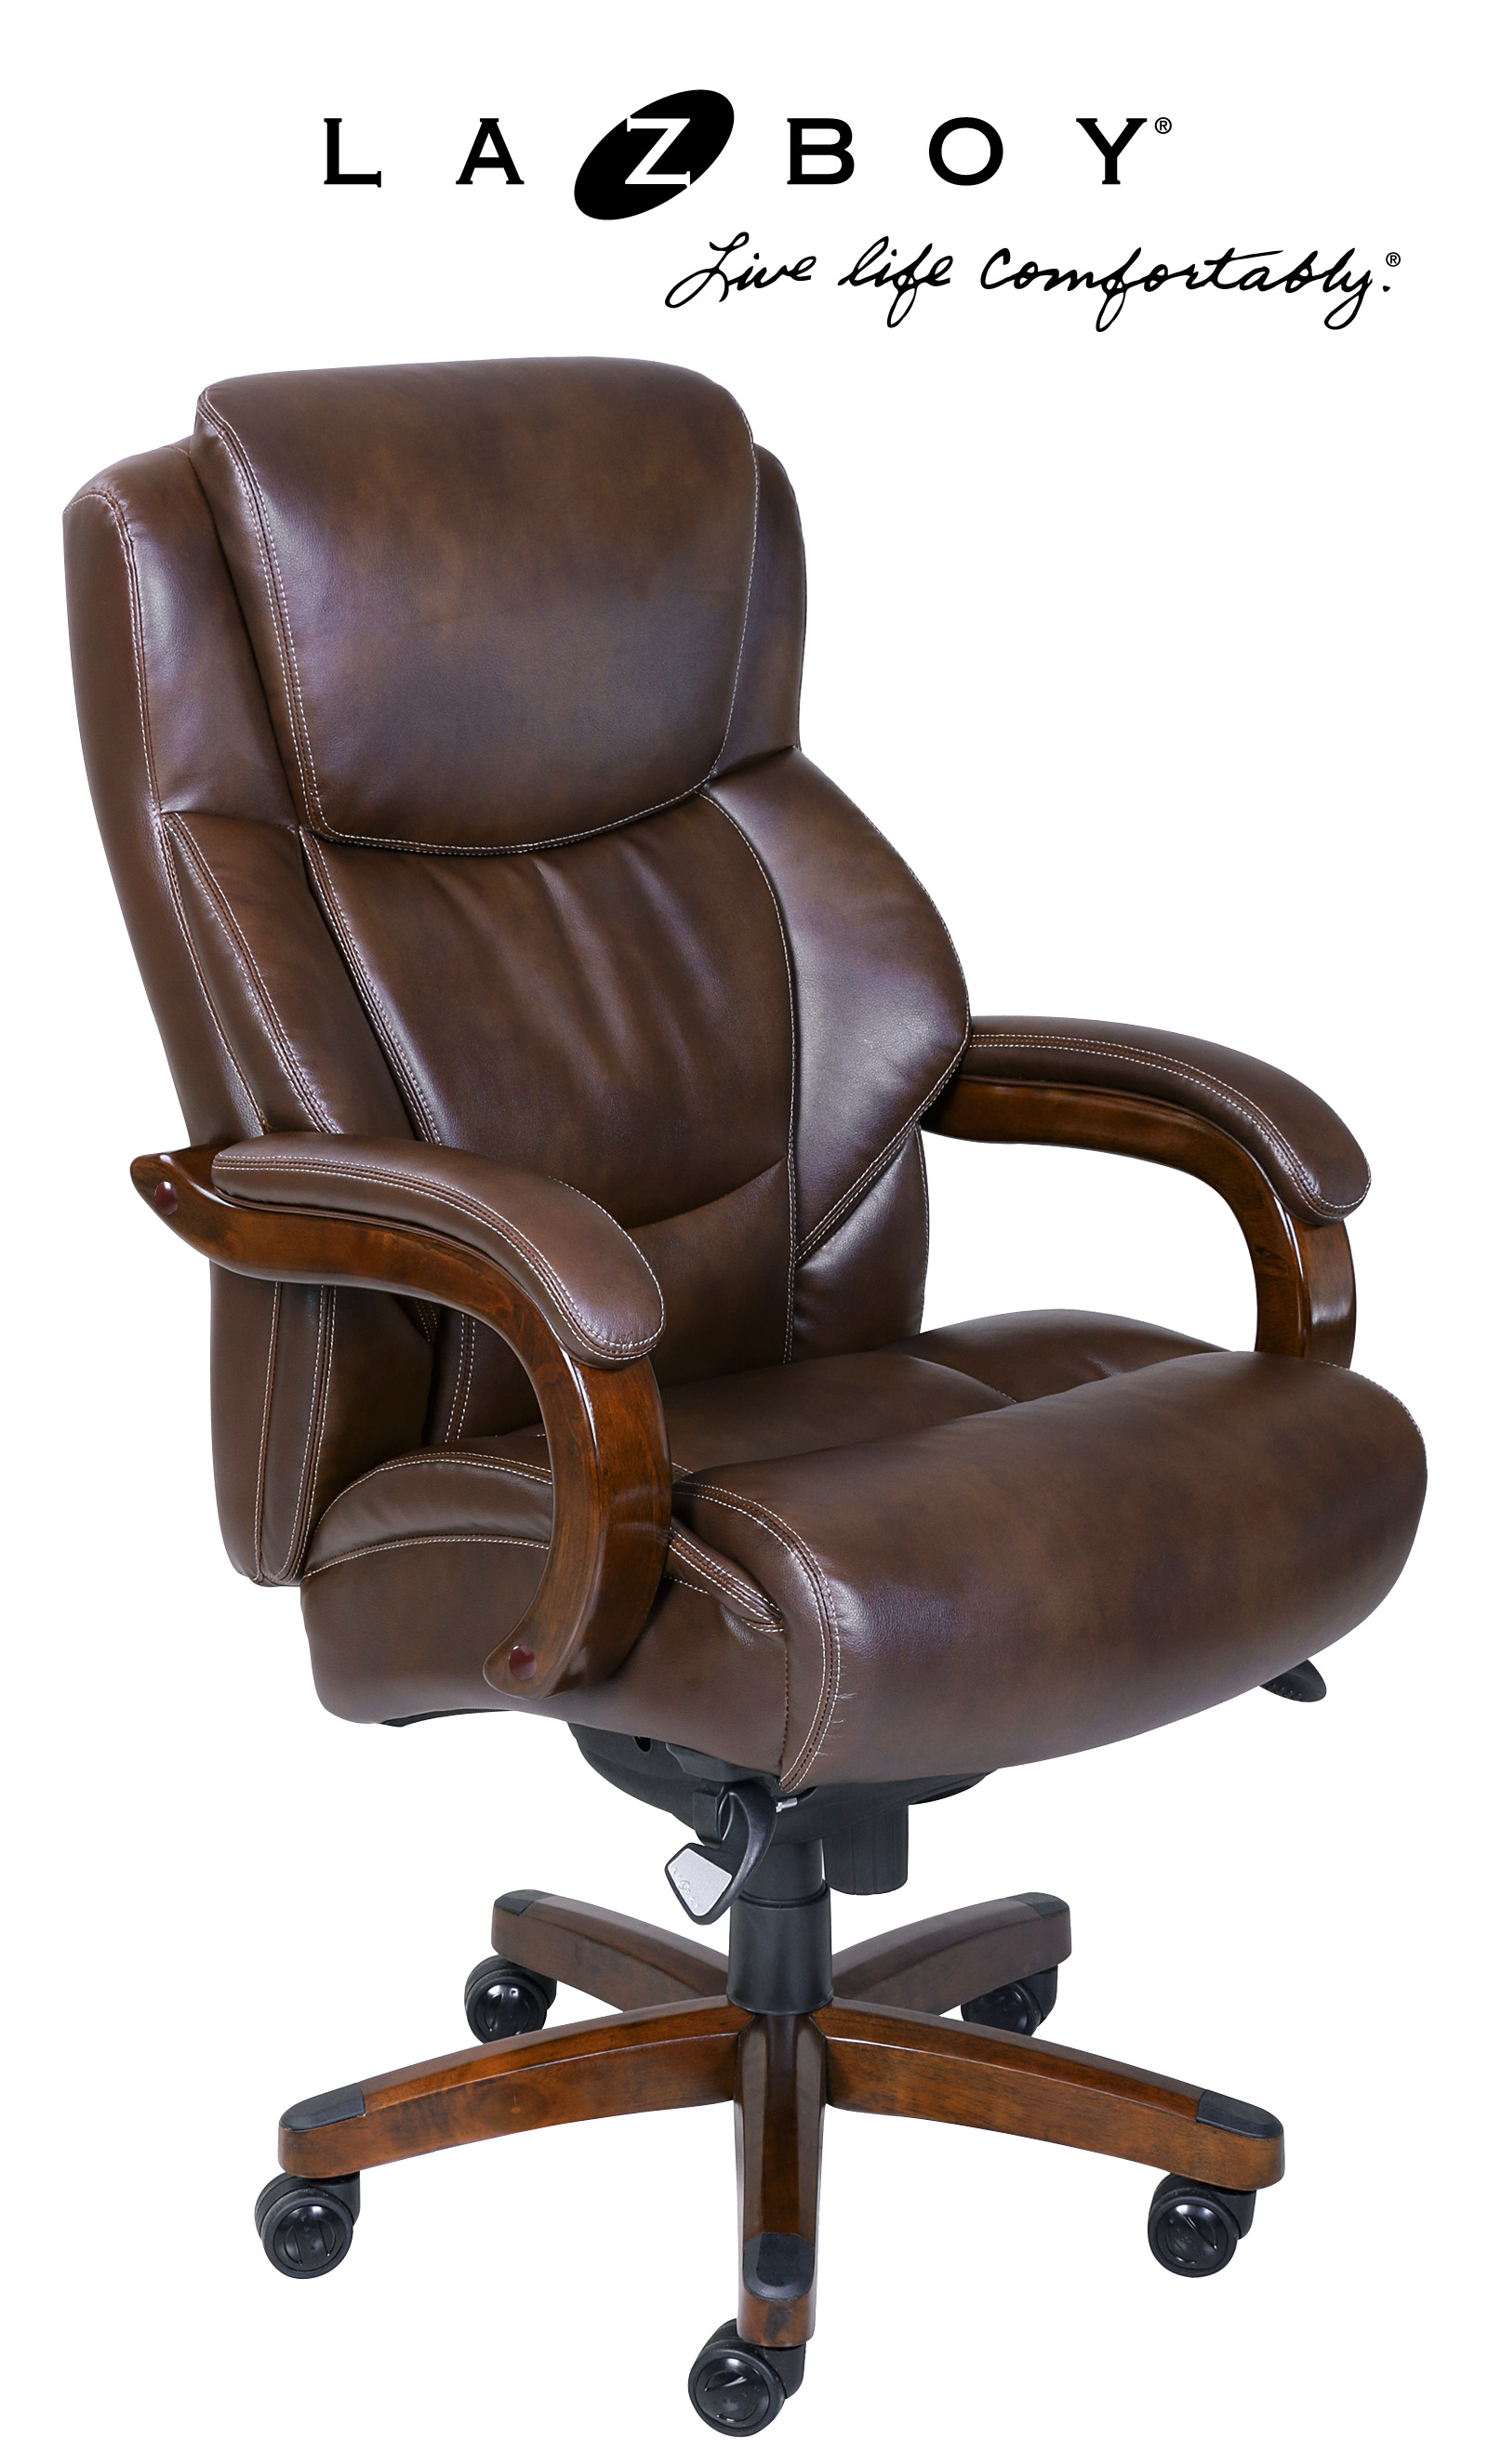 best big and tall office chair reviews how to install rail molding with wainscoting la z boy delano comfort core executive